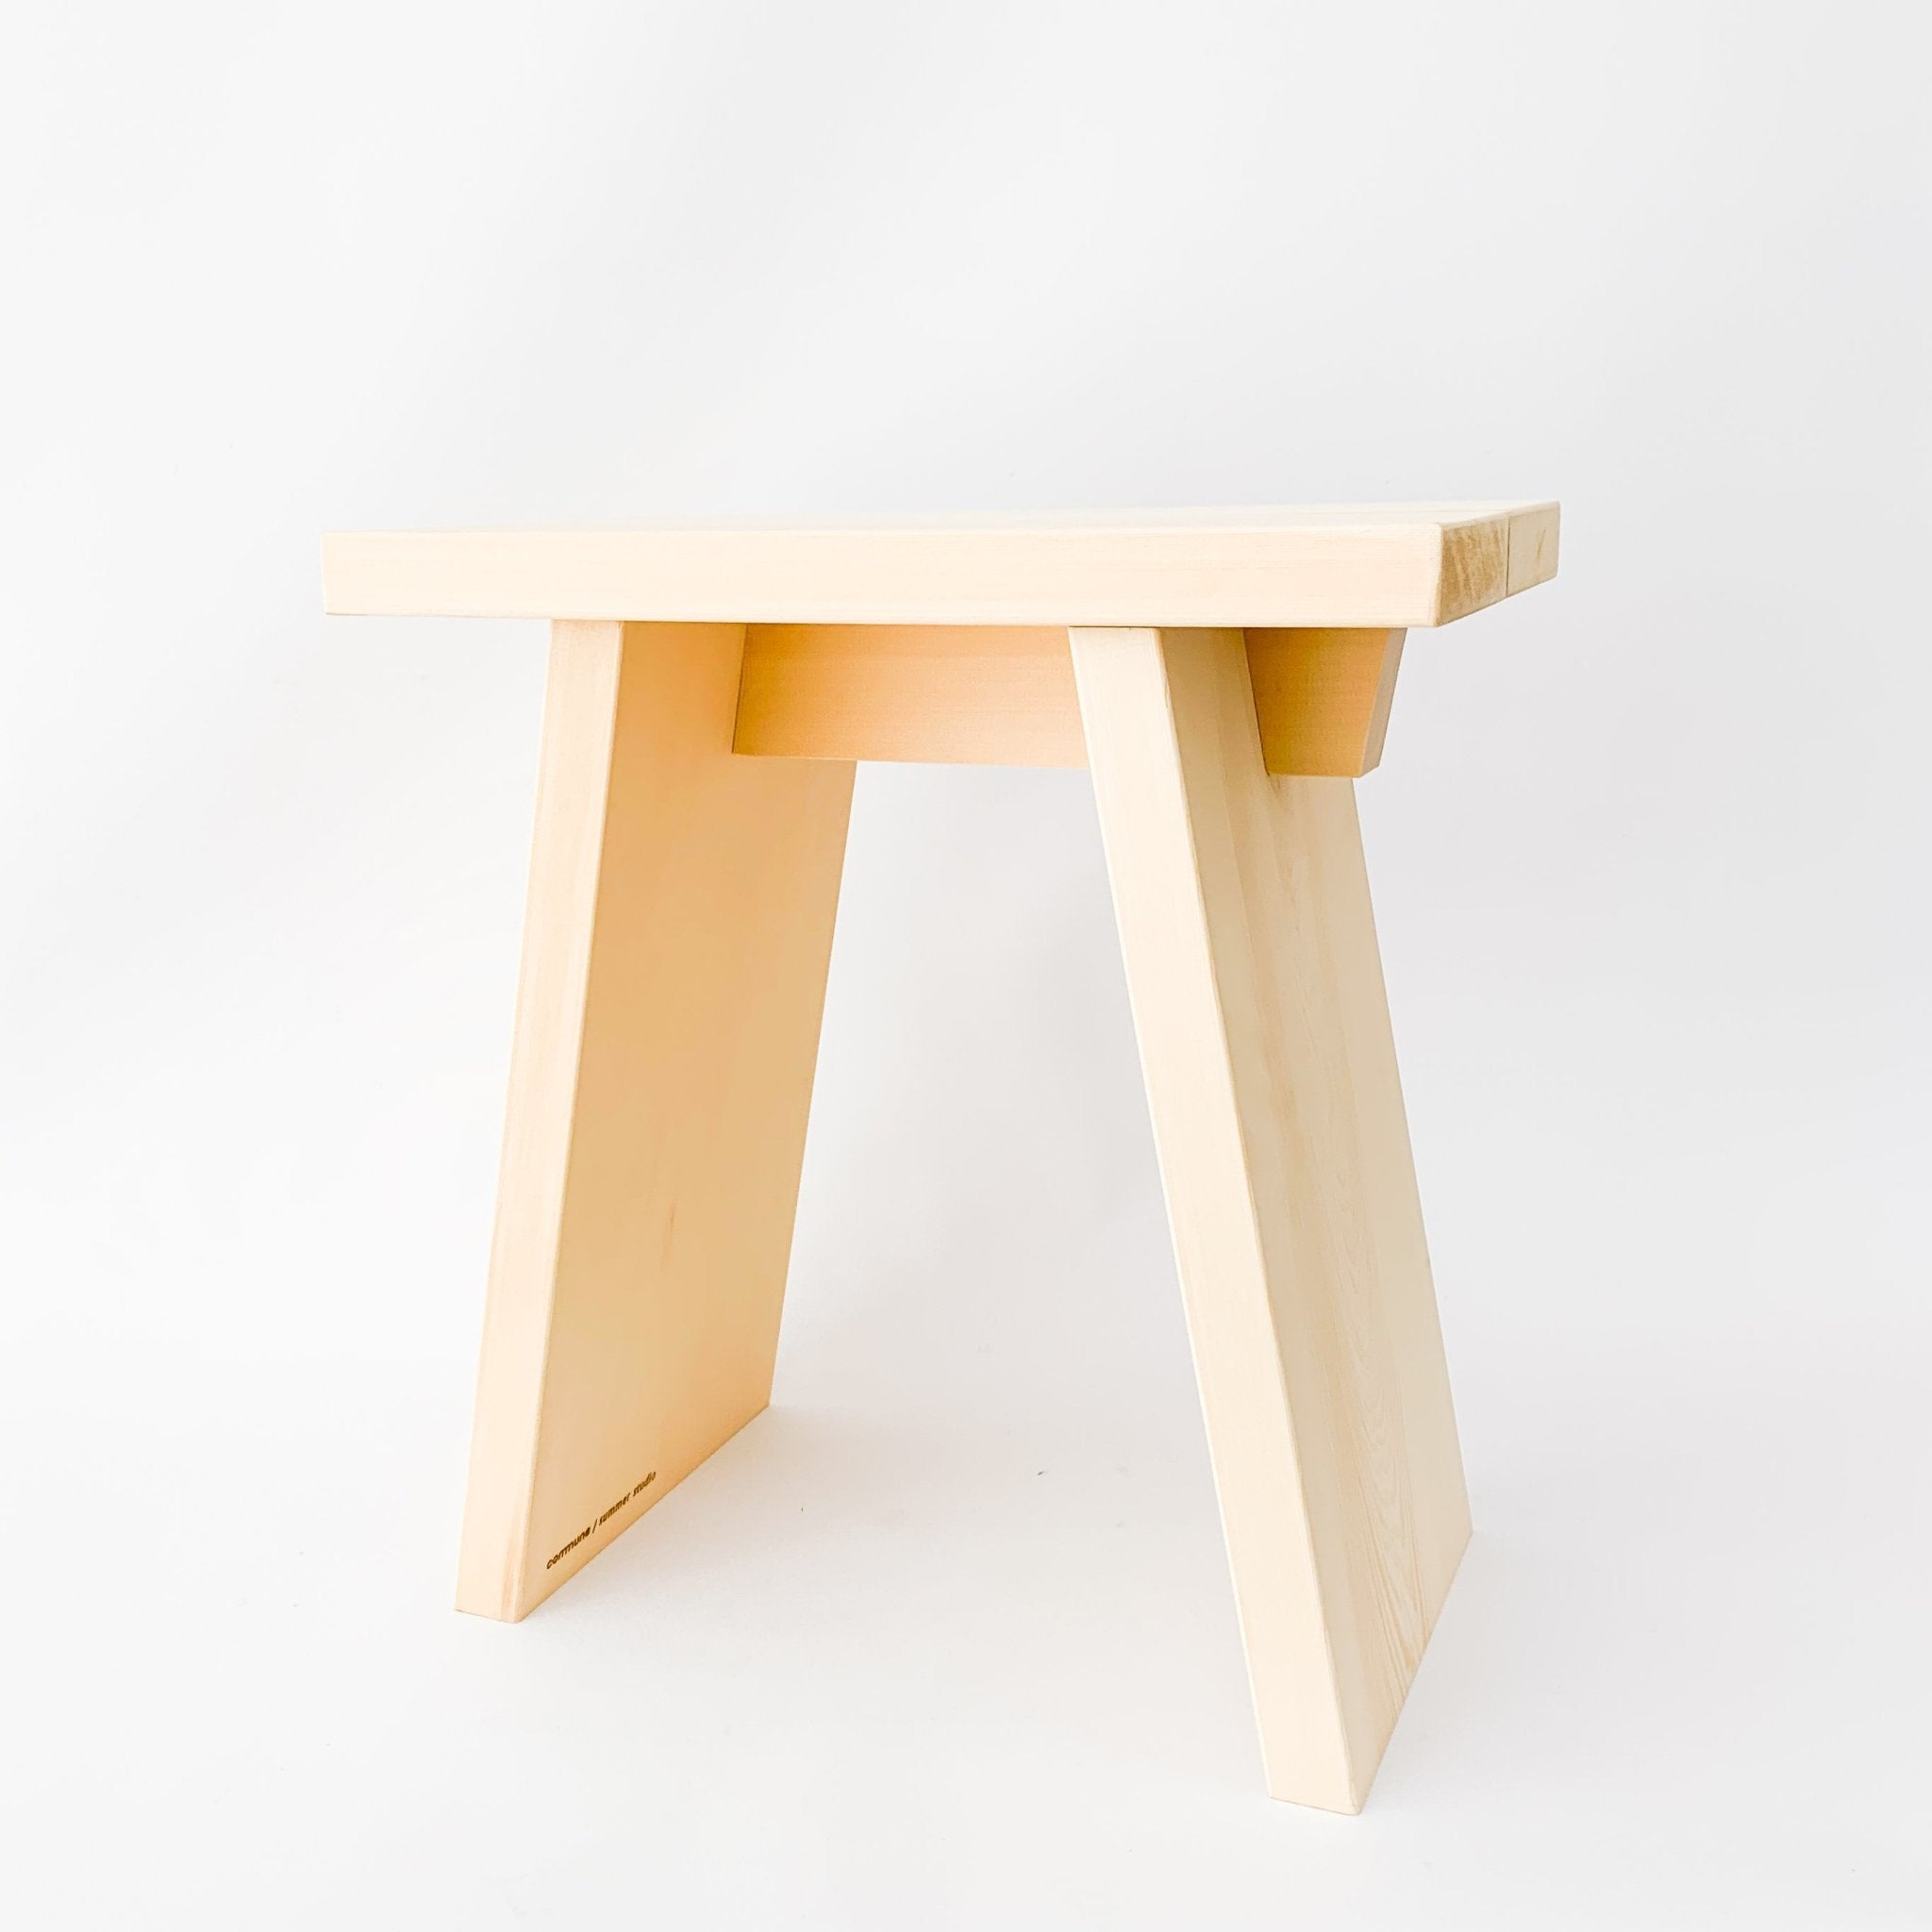 Ise Stool by Summer Studio x Commune Design - tortoise general store